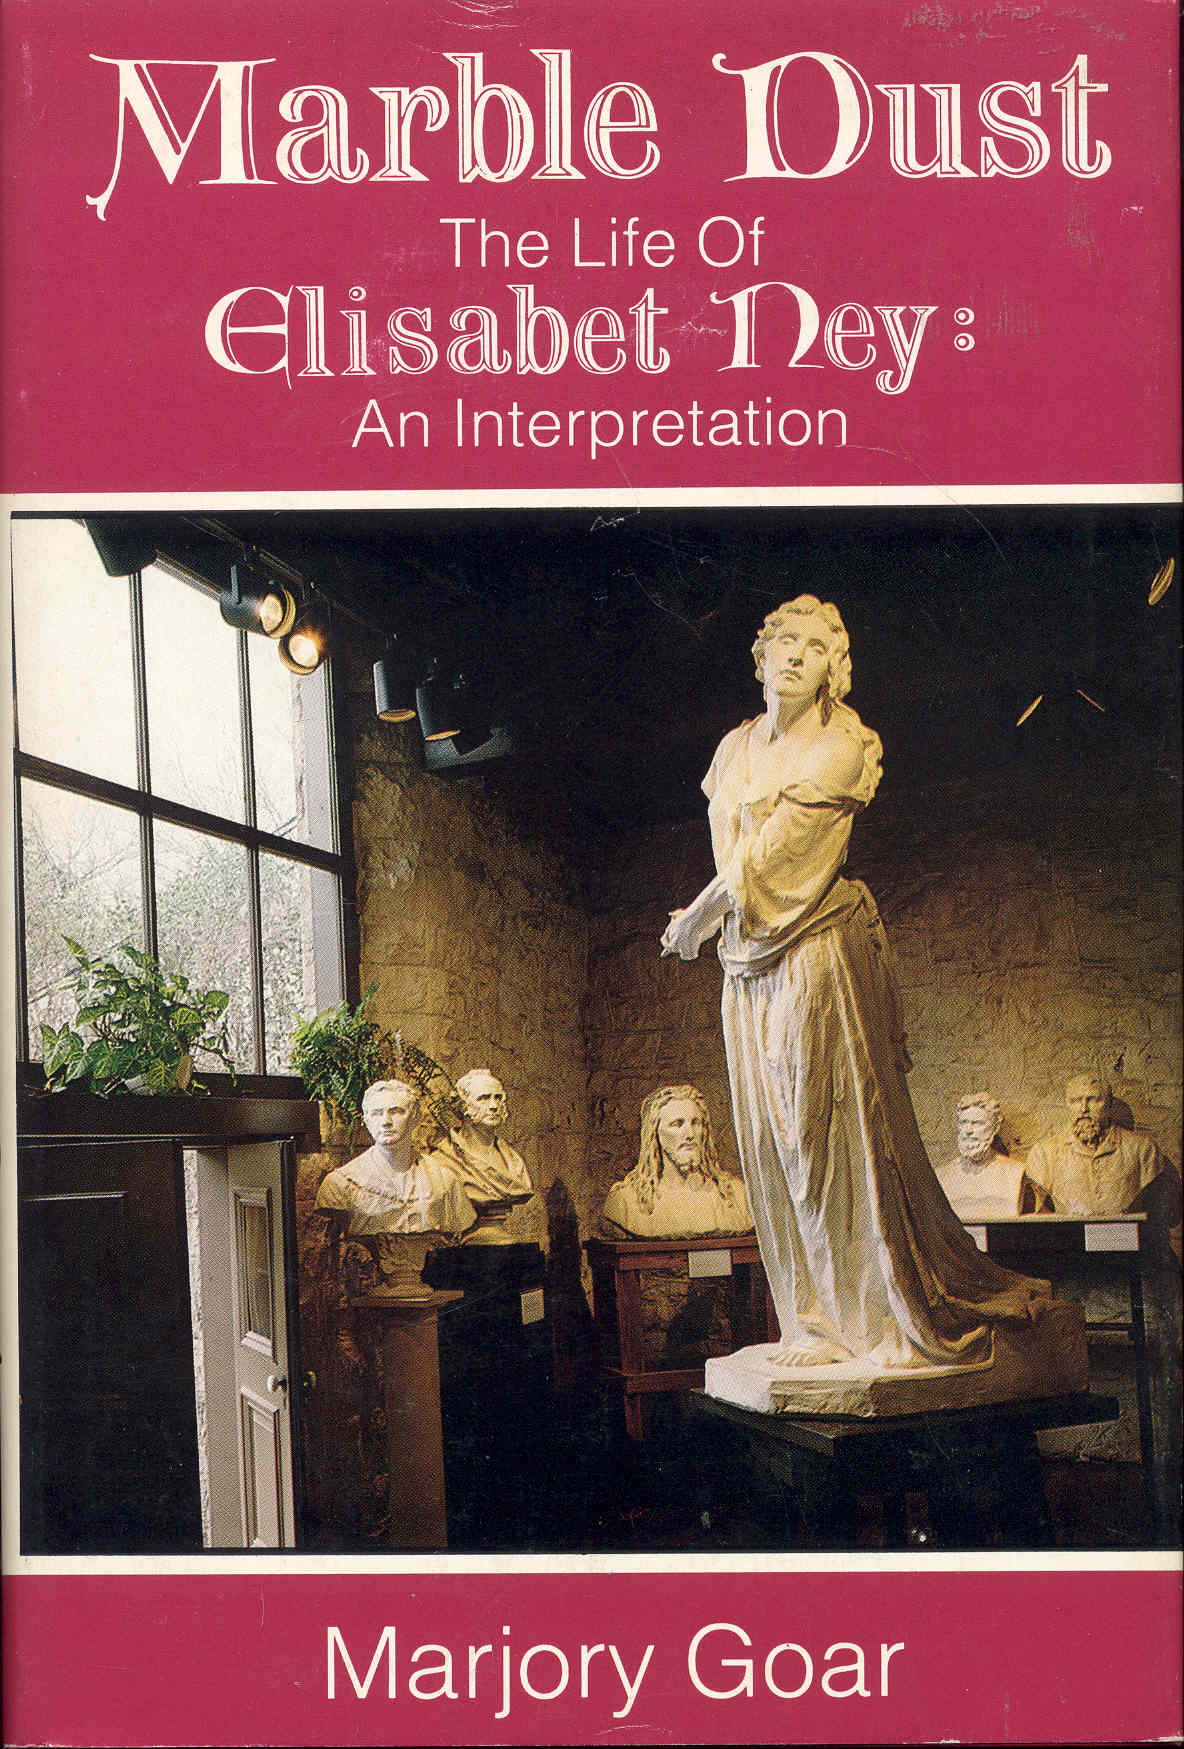 Image for Marble Dust: The Life of Elisabet Ney - An Interpretation